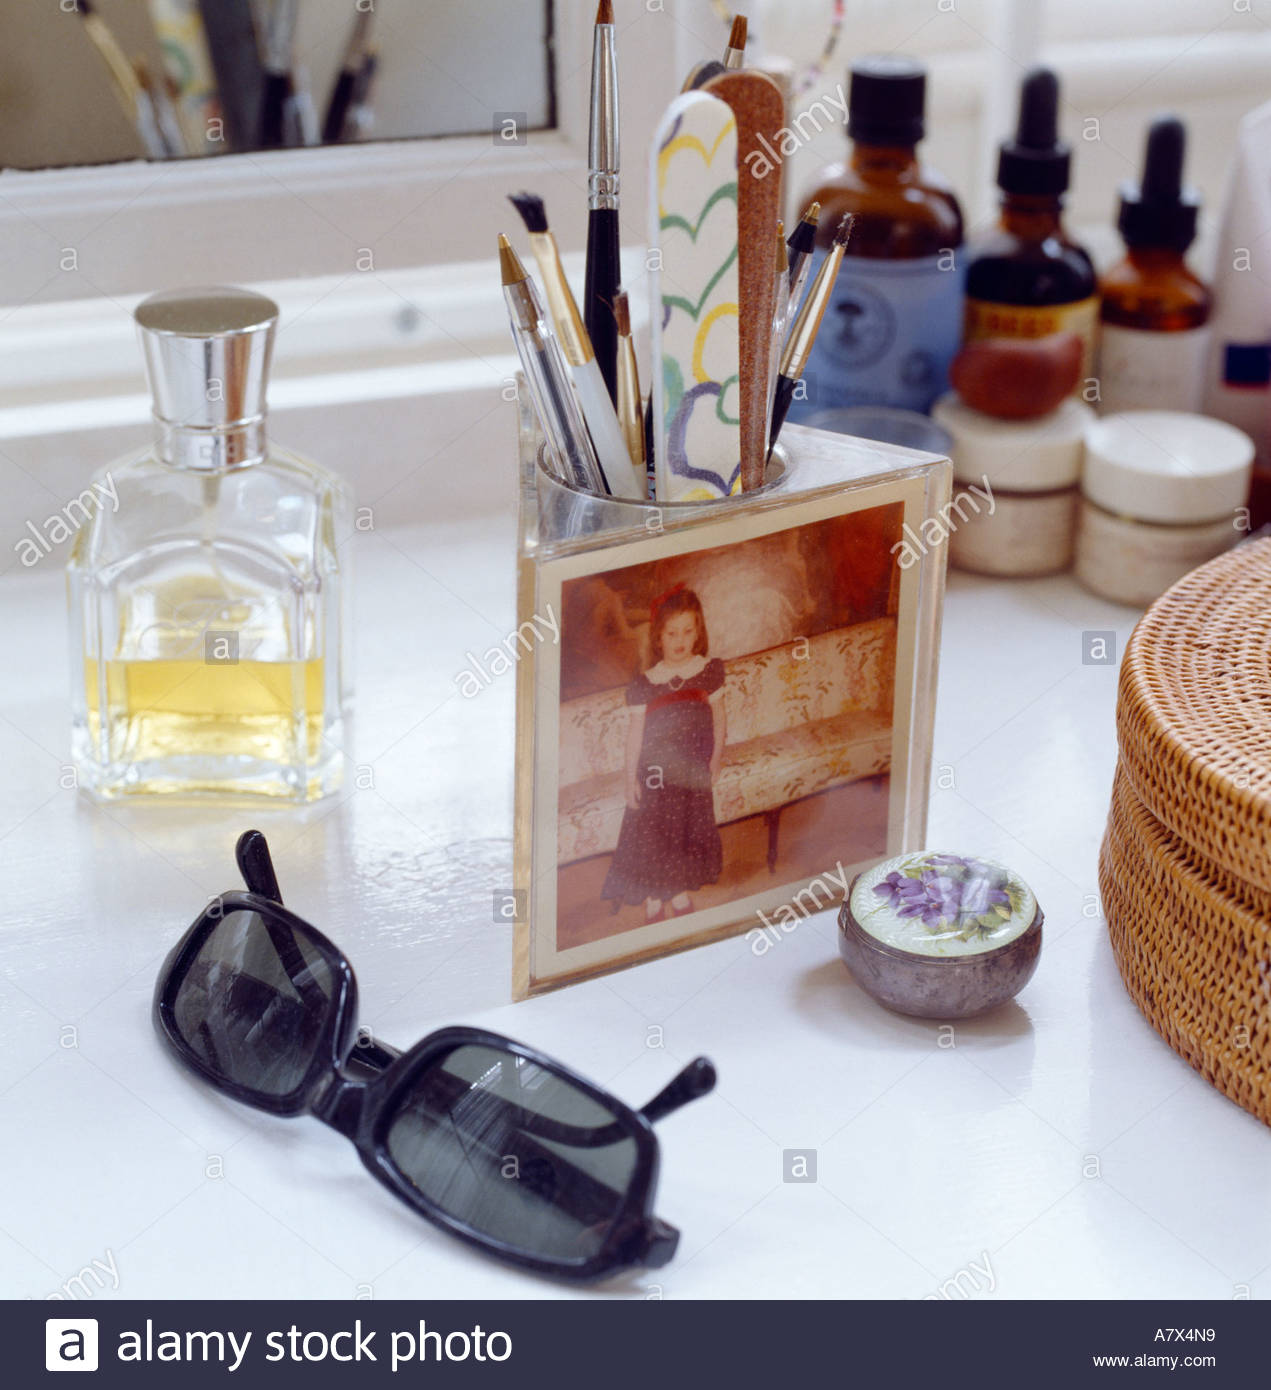 Kirstie allsops dressing table with makeup perfume sunglasses and kirstie allsops dressing table with makeup perfume sunglasses and photo cube watchthetrailerfo